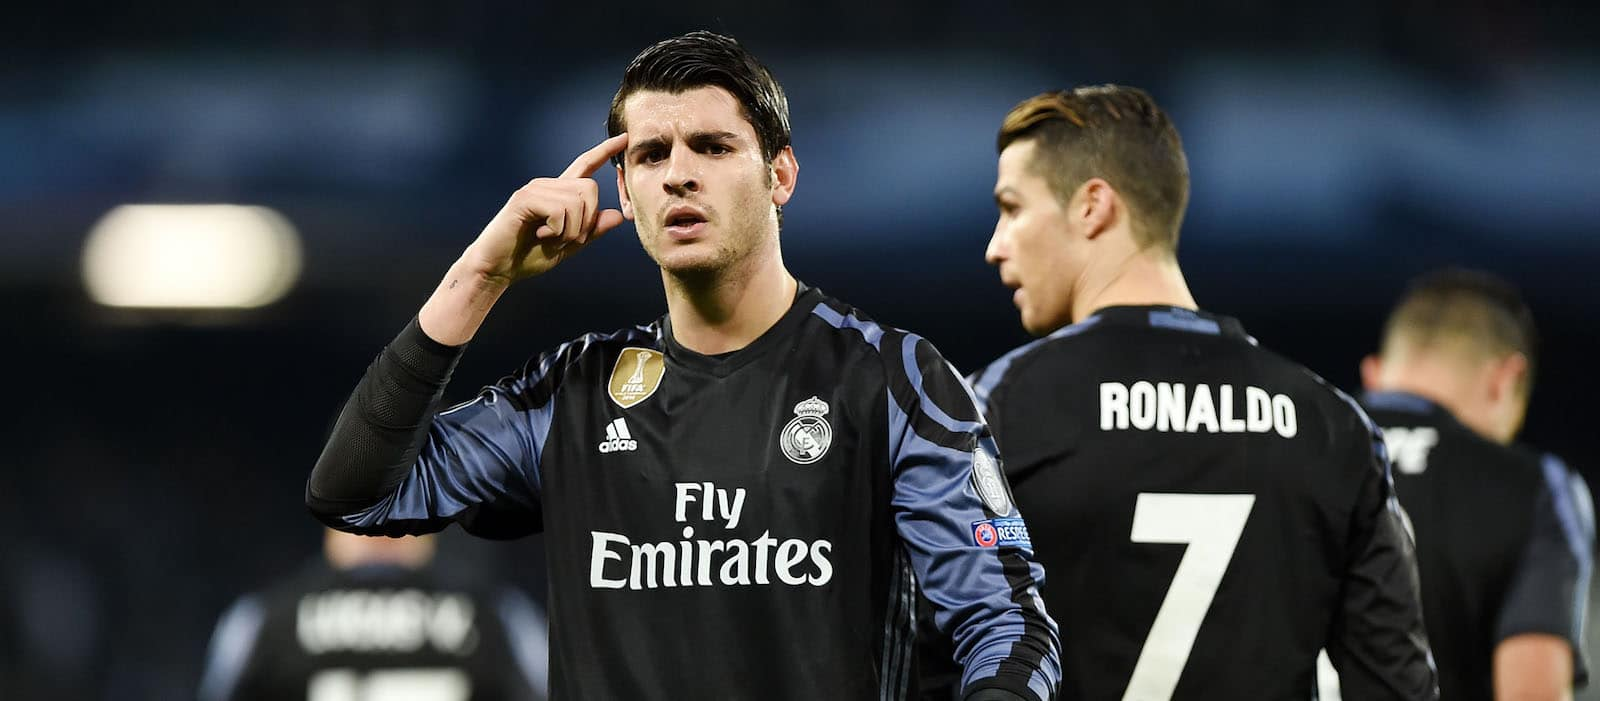 Spain Alvaro Morata to Man United could be announced Tuesday